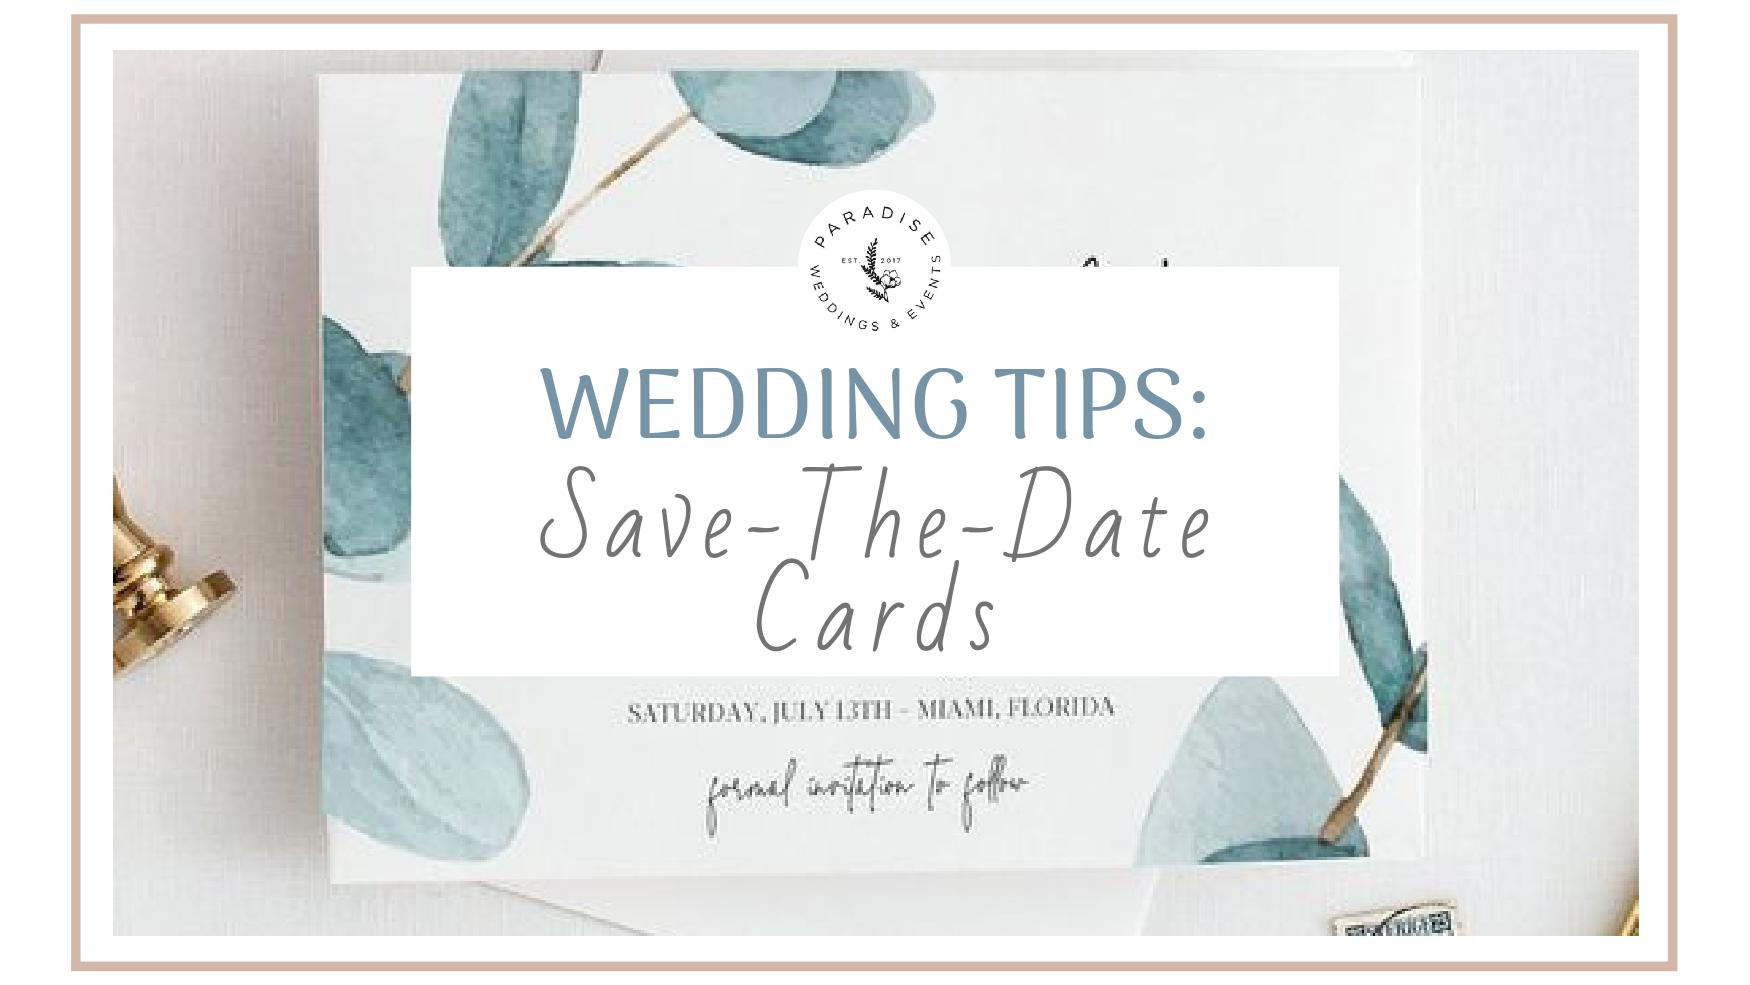 save the date cards for wedding stationary